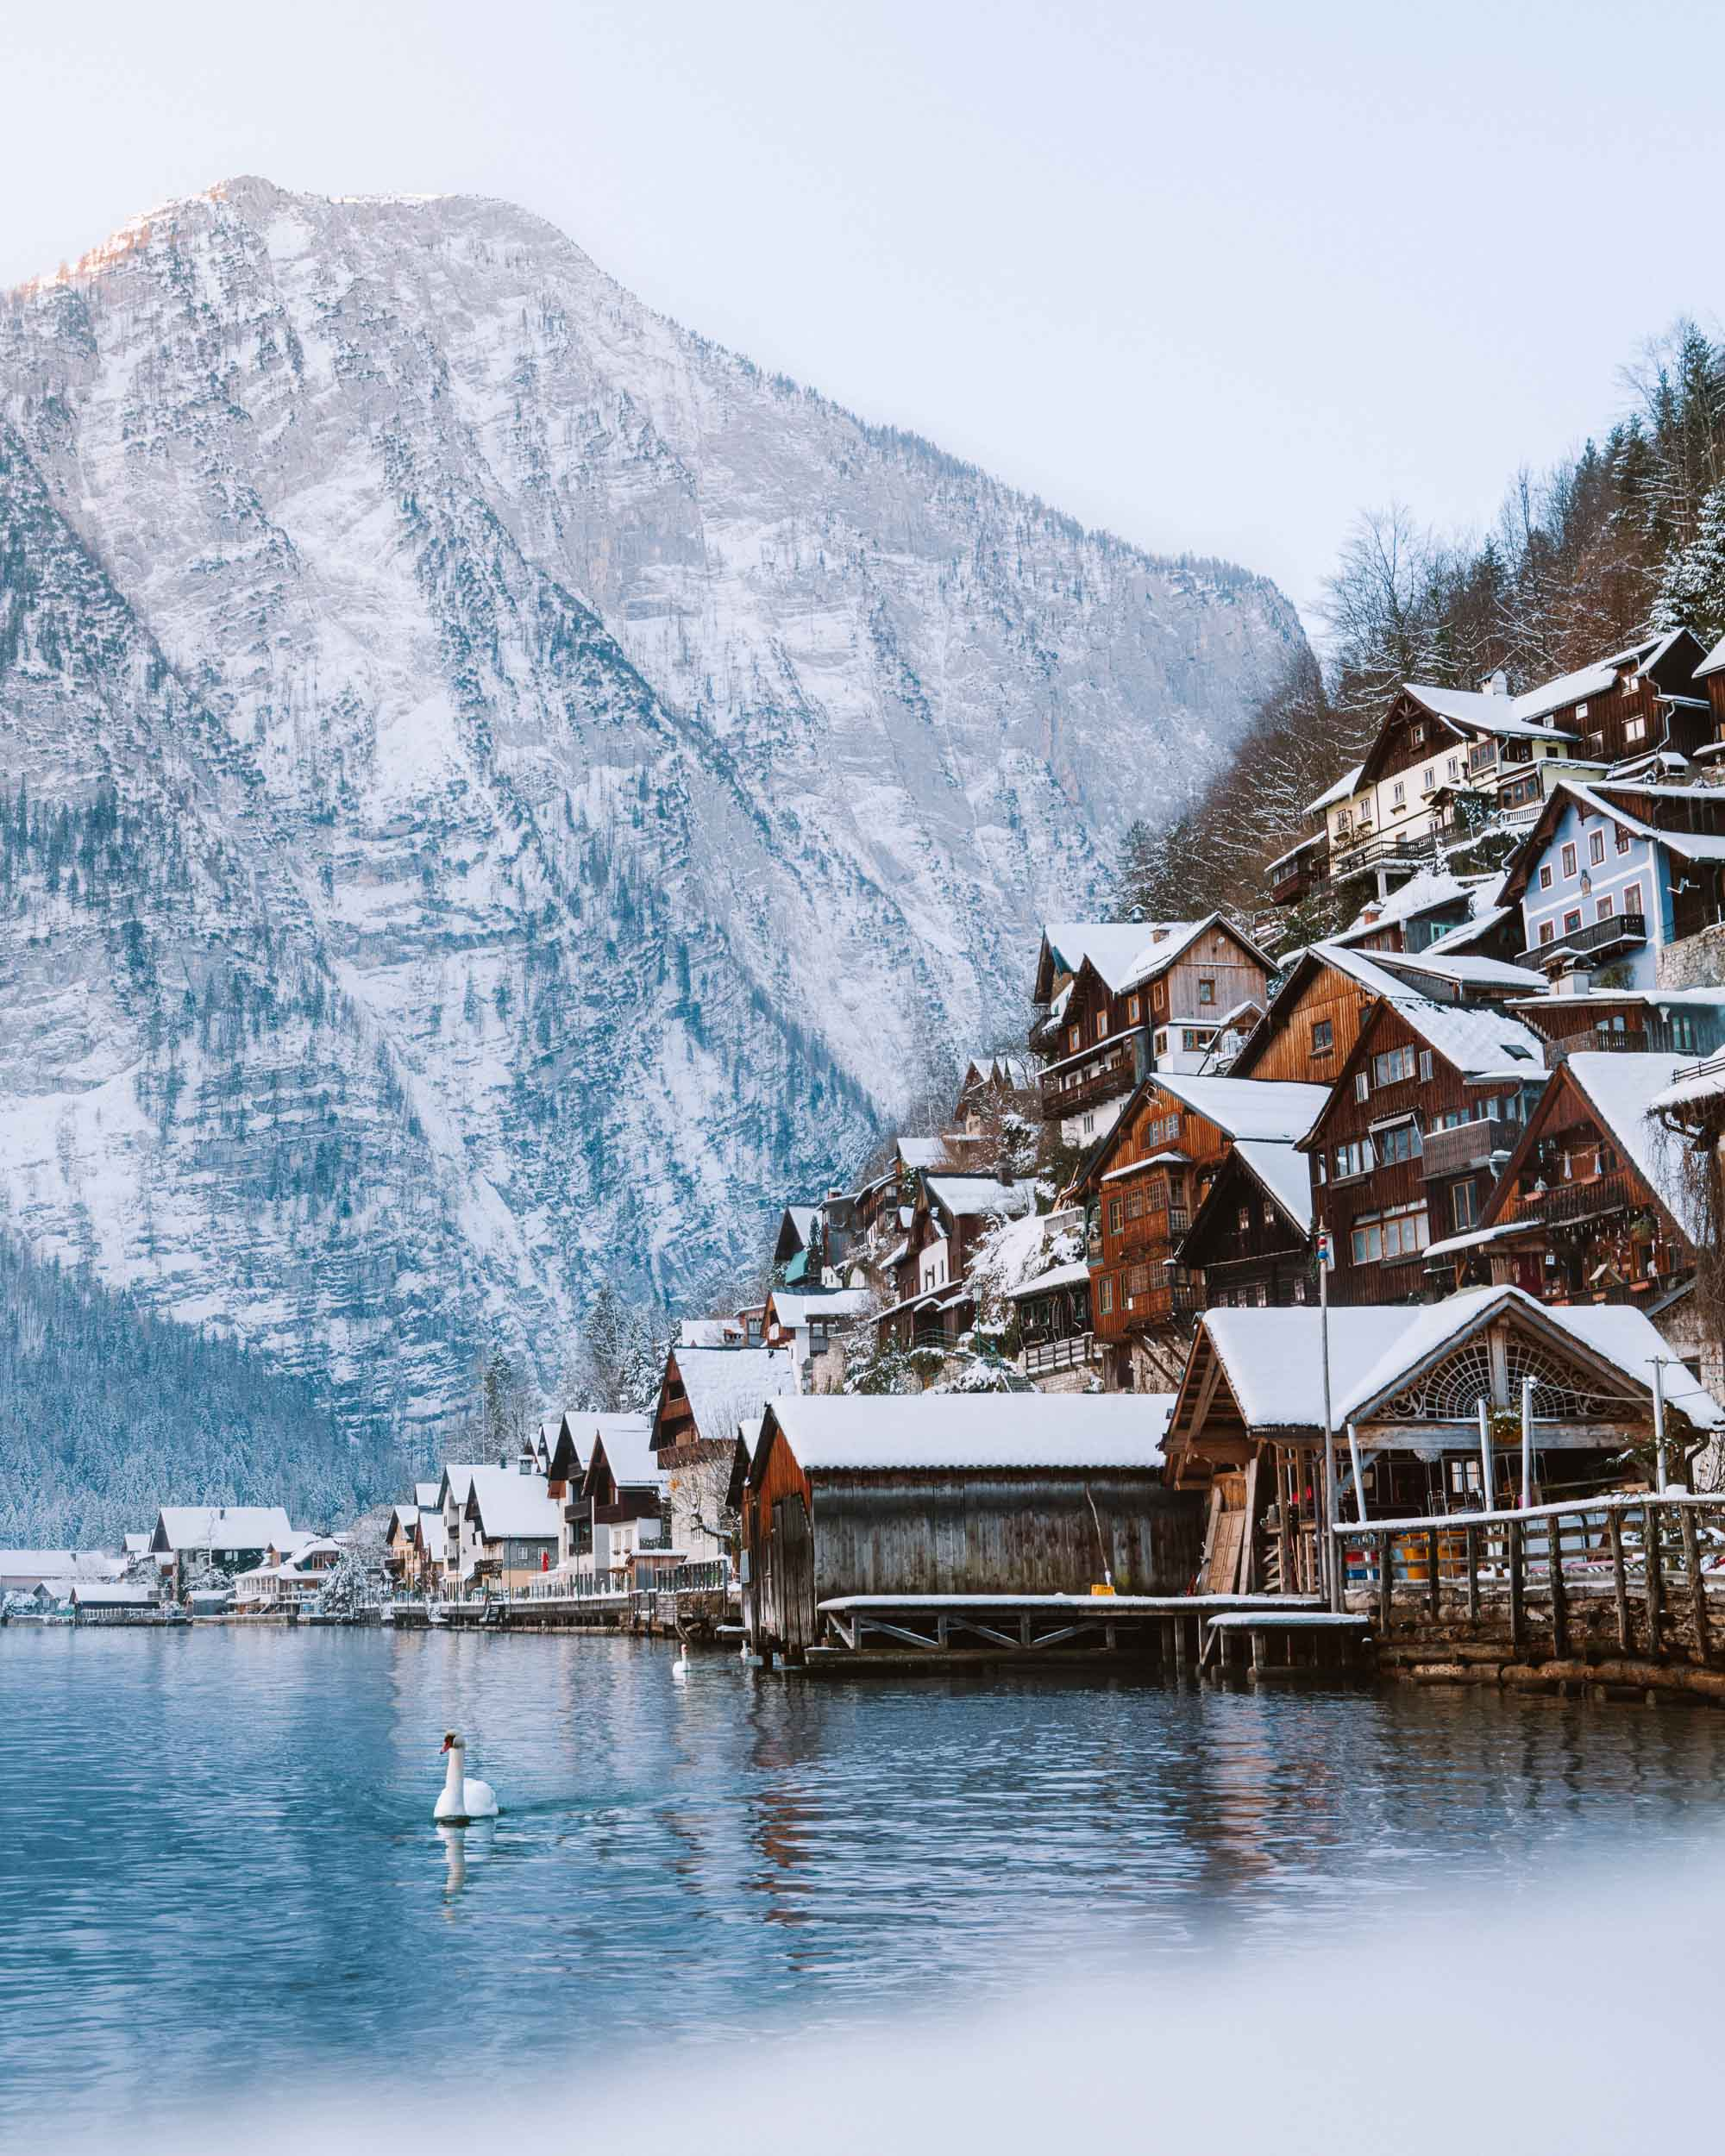 Houses on the mountain in Hallstatt Austria with swans in the lake